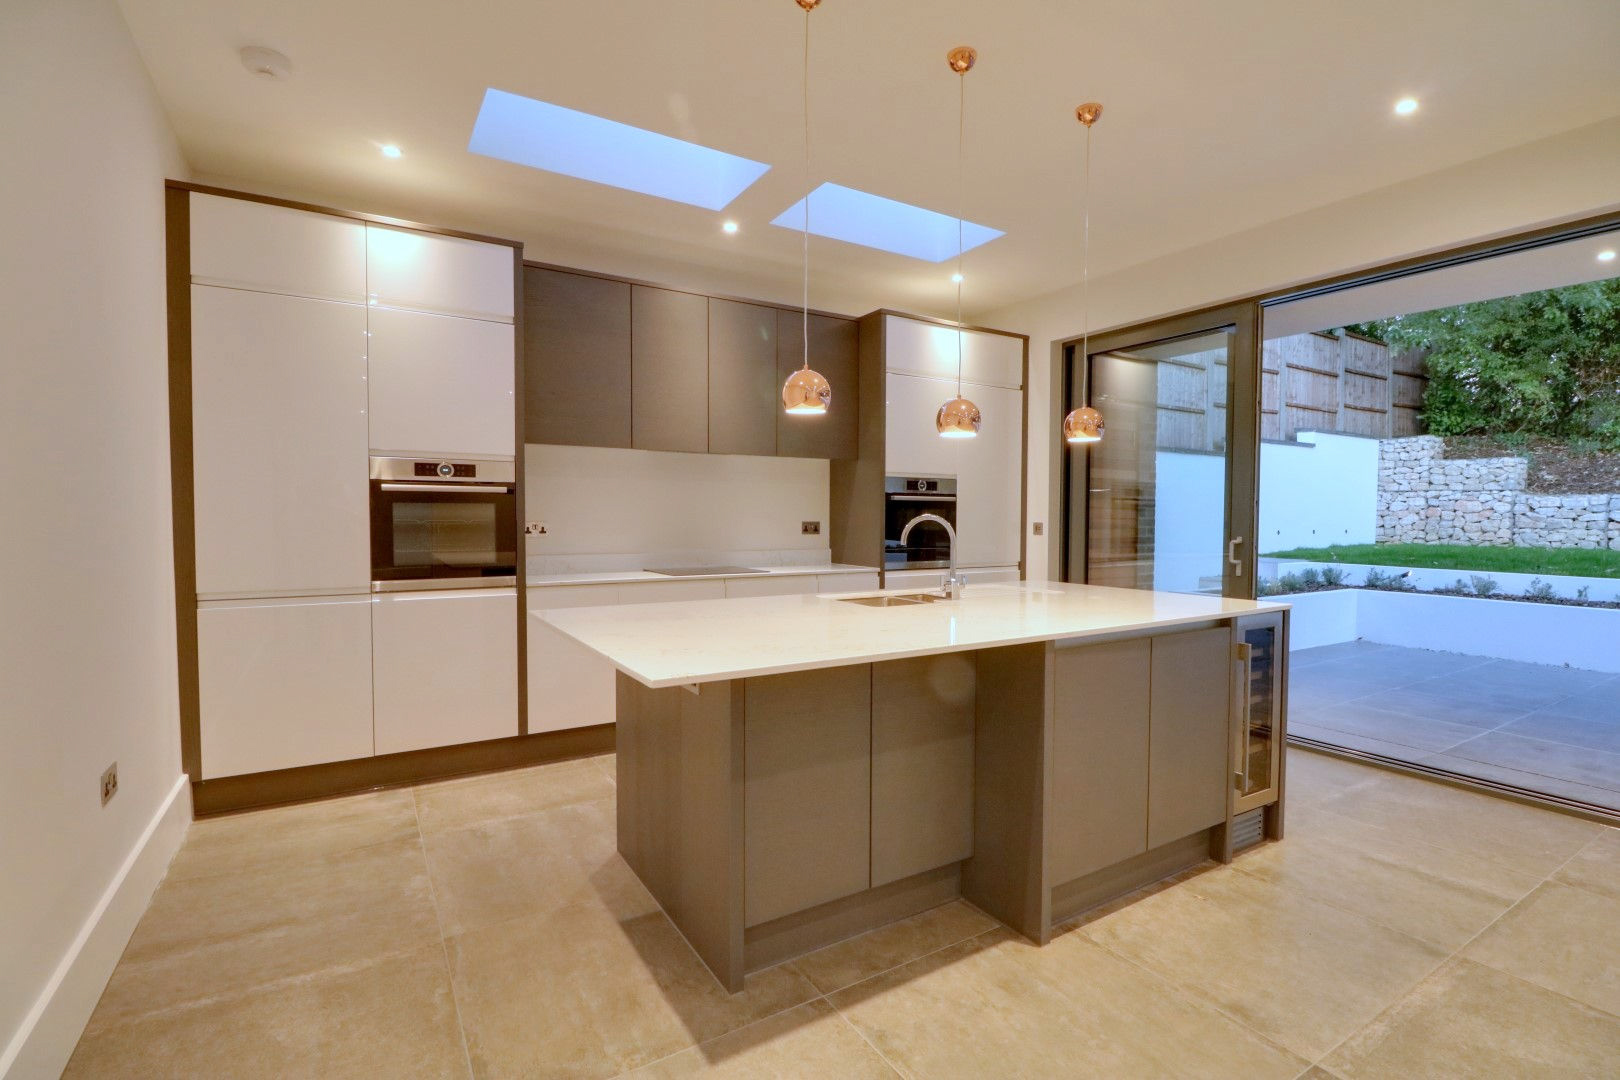 Modern kitchen in London new build transformed with Home Automation by Bryanston Smarthome